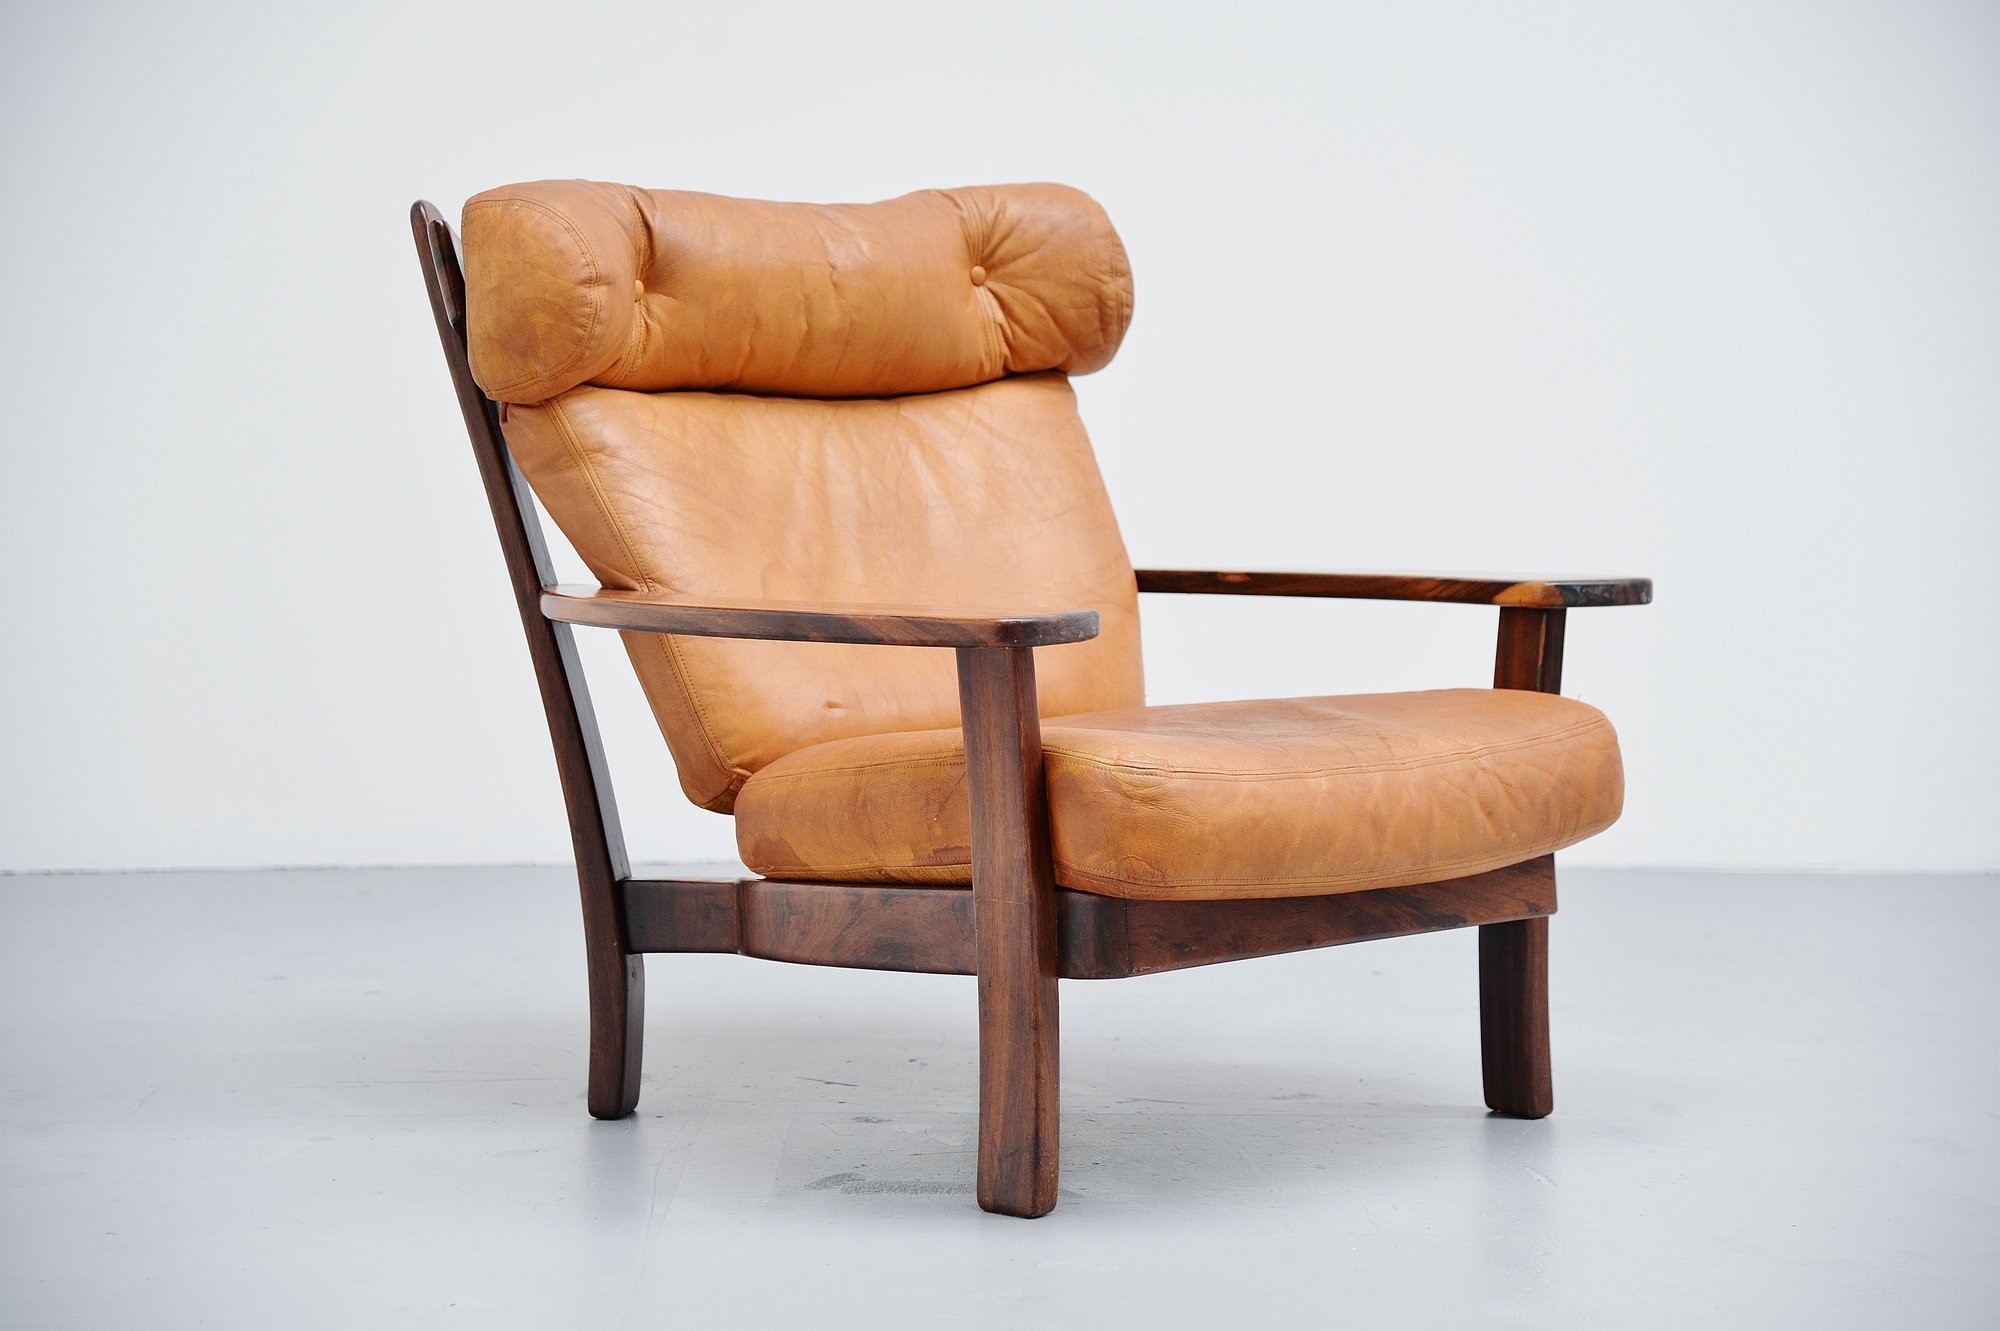 Sergio Rodrigues style Ox lounge chair Brazil 1960. Up. Down & Sergio Rodrigues style Ox lounge chair Brazil 1960 u2013 MassModernDesign